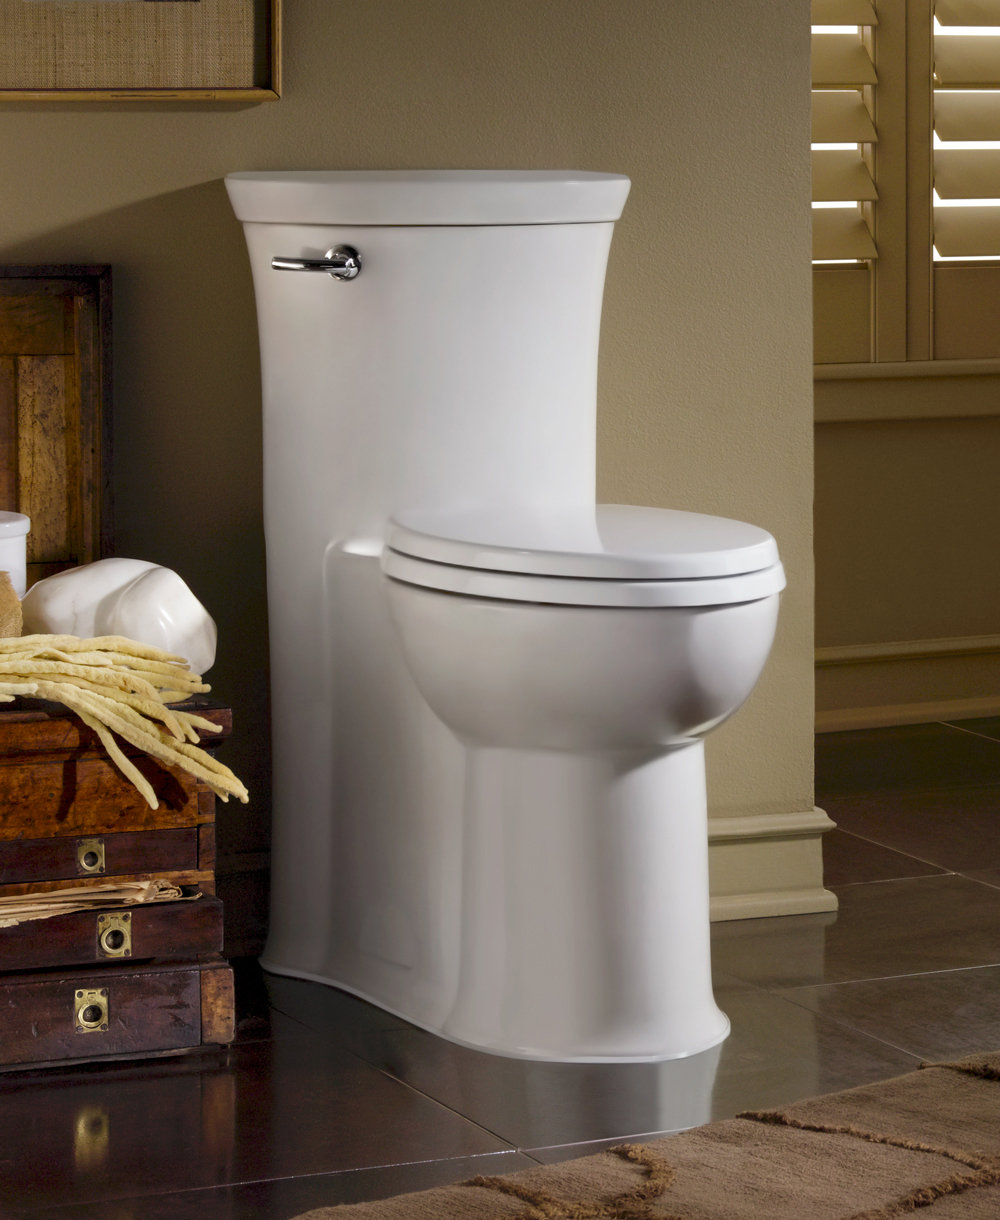 2786.128.020 tropic rh elongated one piece flowise toilet, white